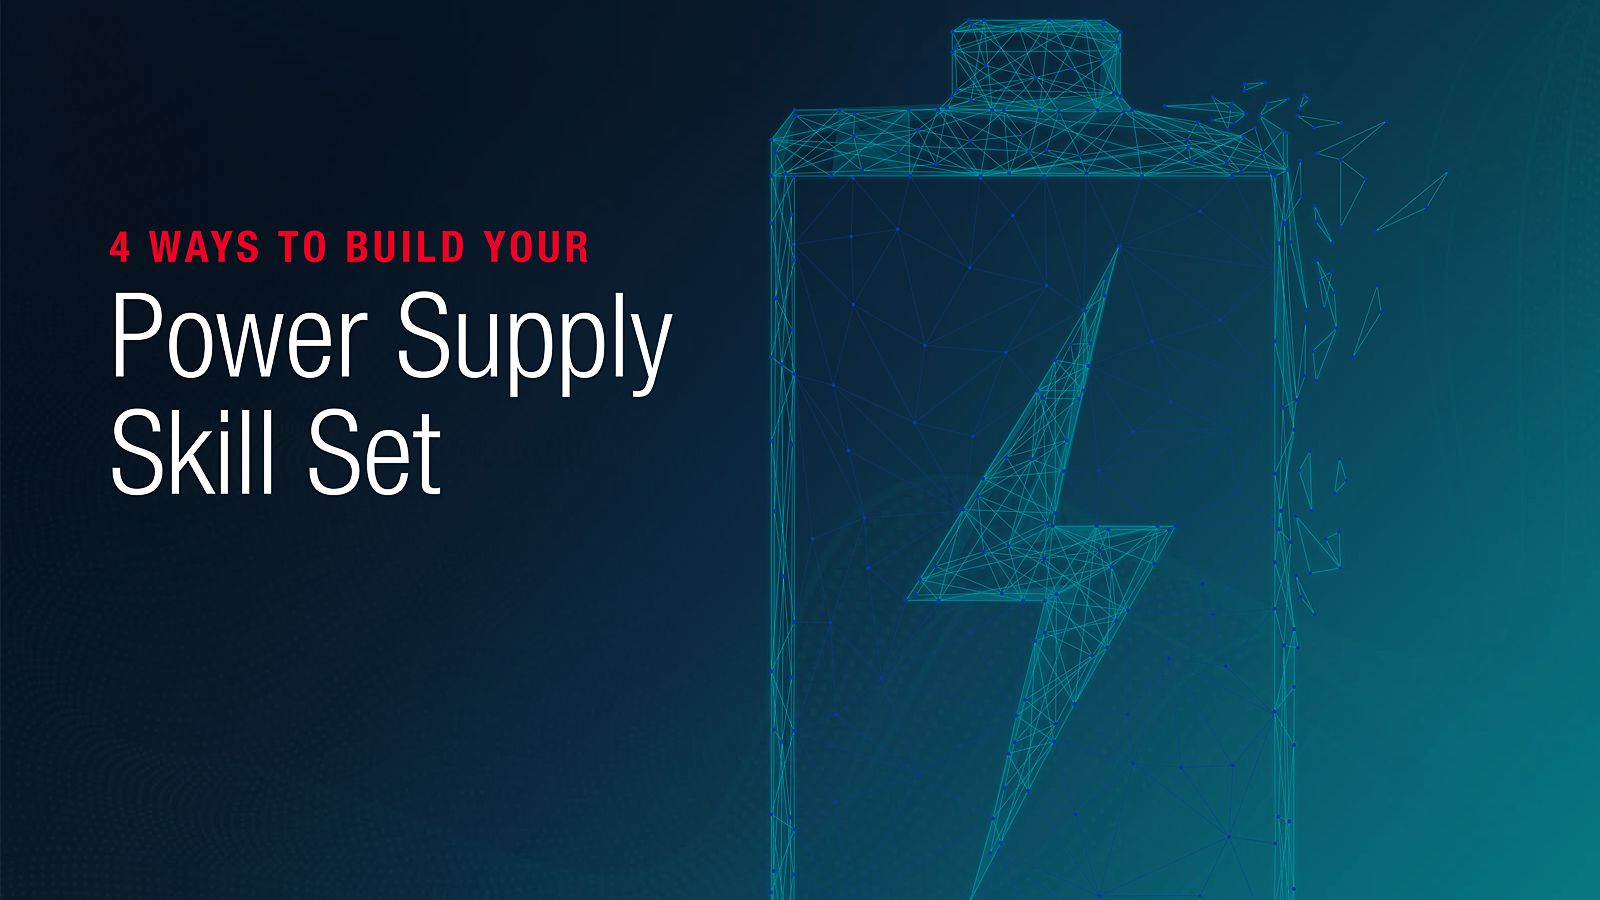 4 Ways to Build Your Power Supply Skill Set